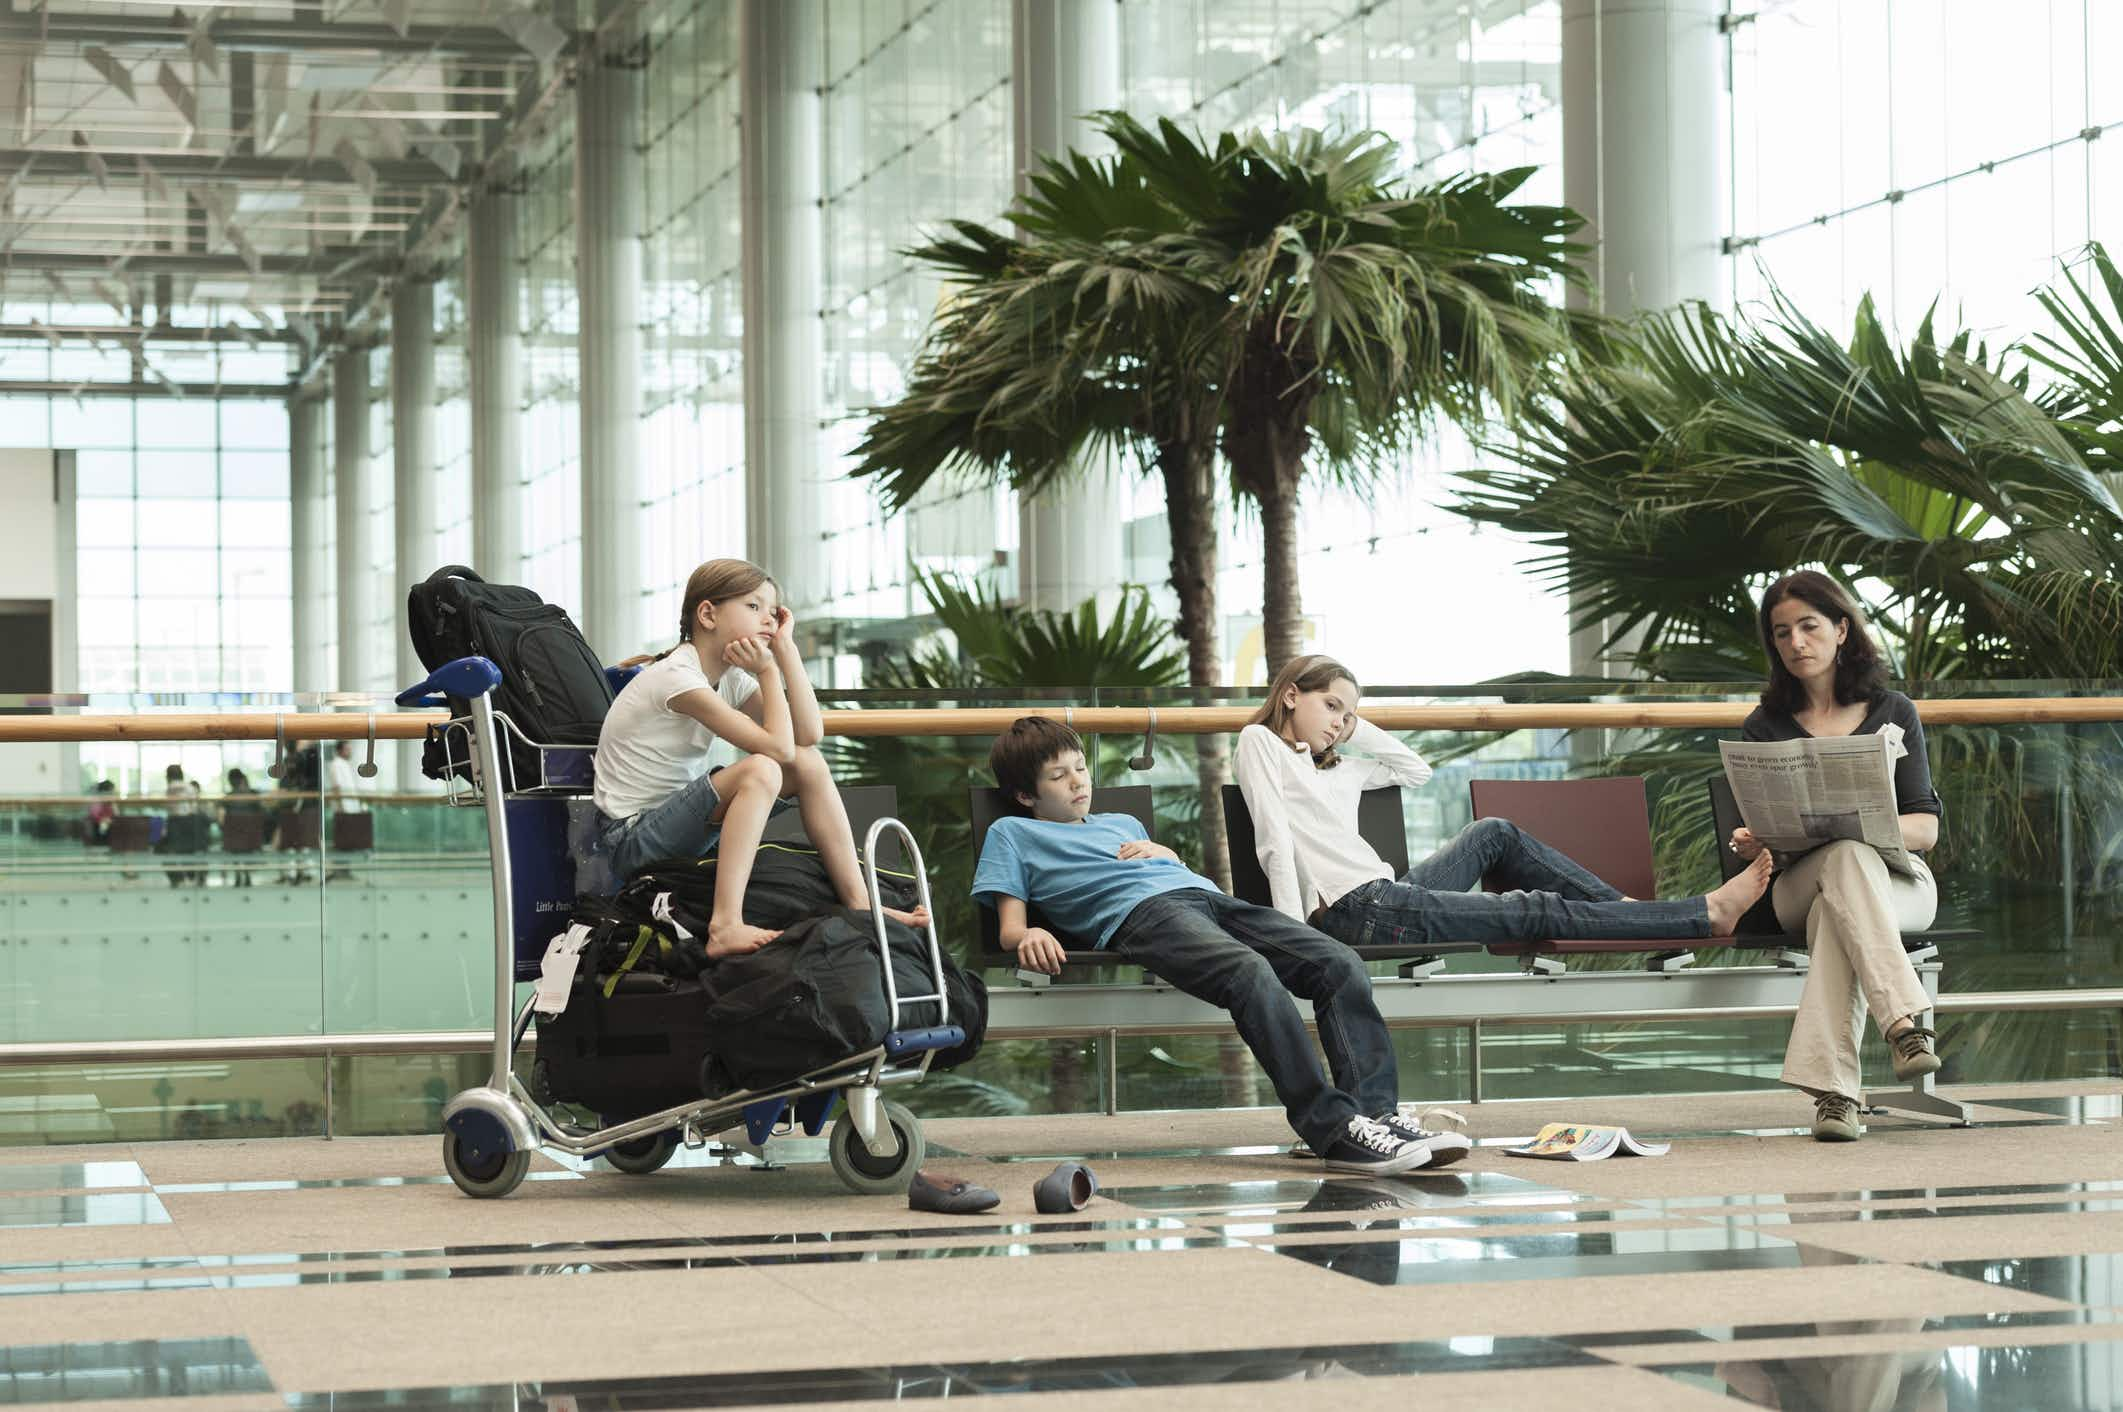 The longest flight delays for travellers coming back to the UK have been revealed